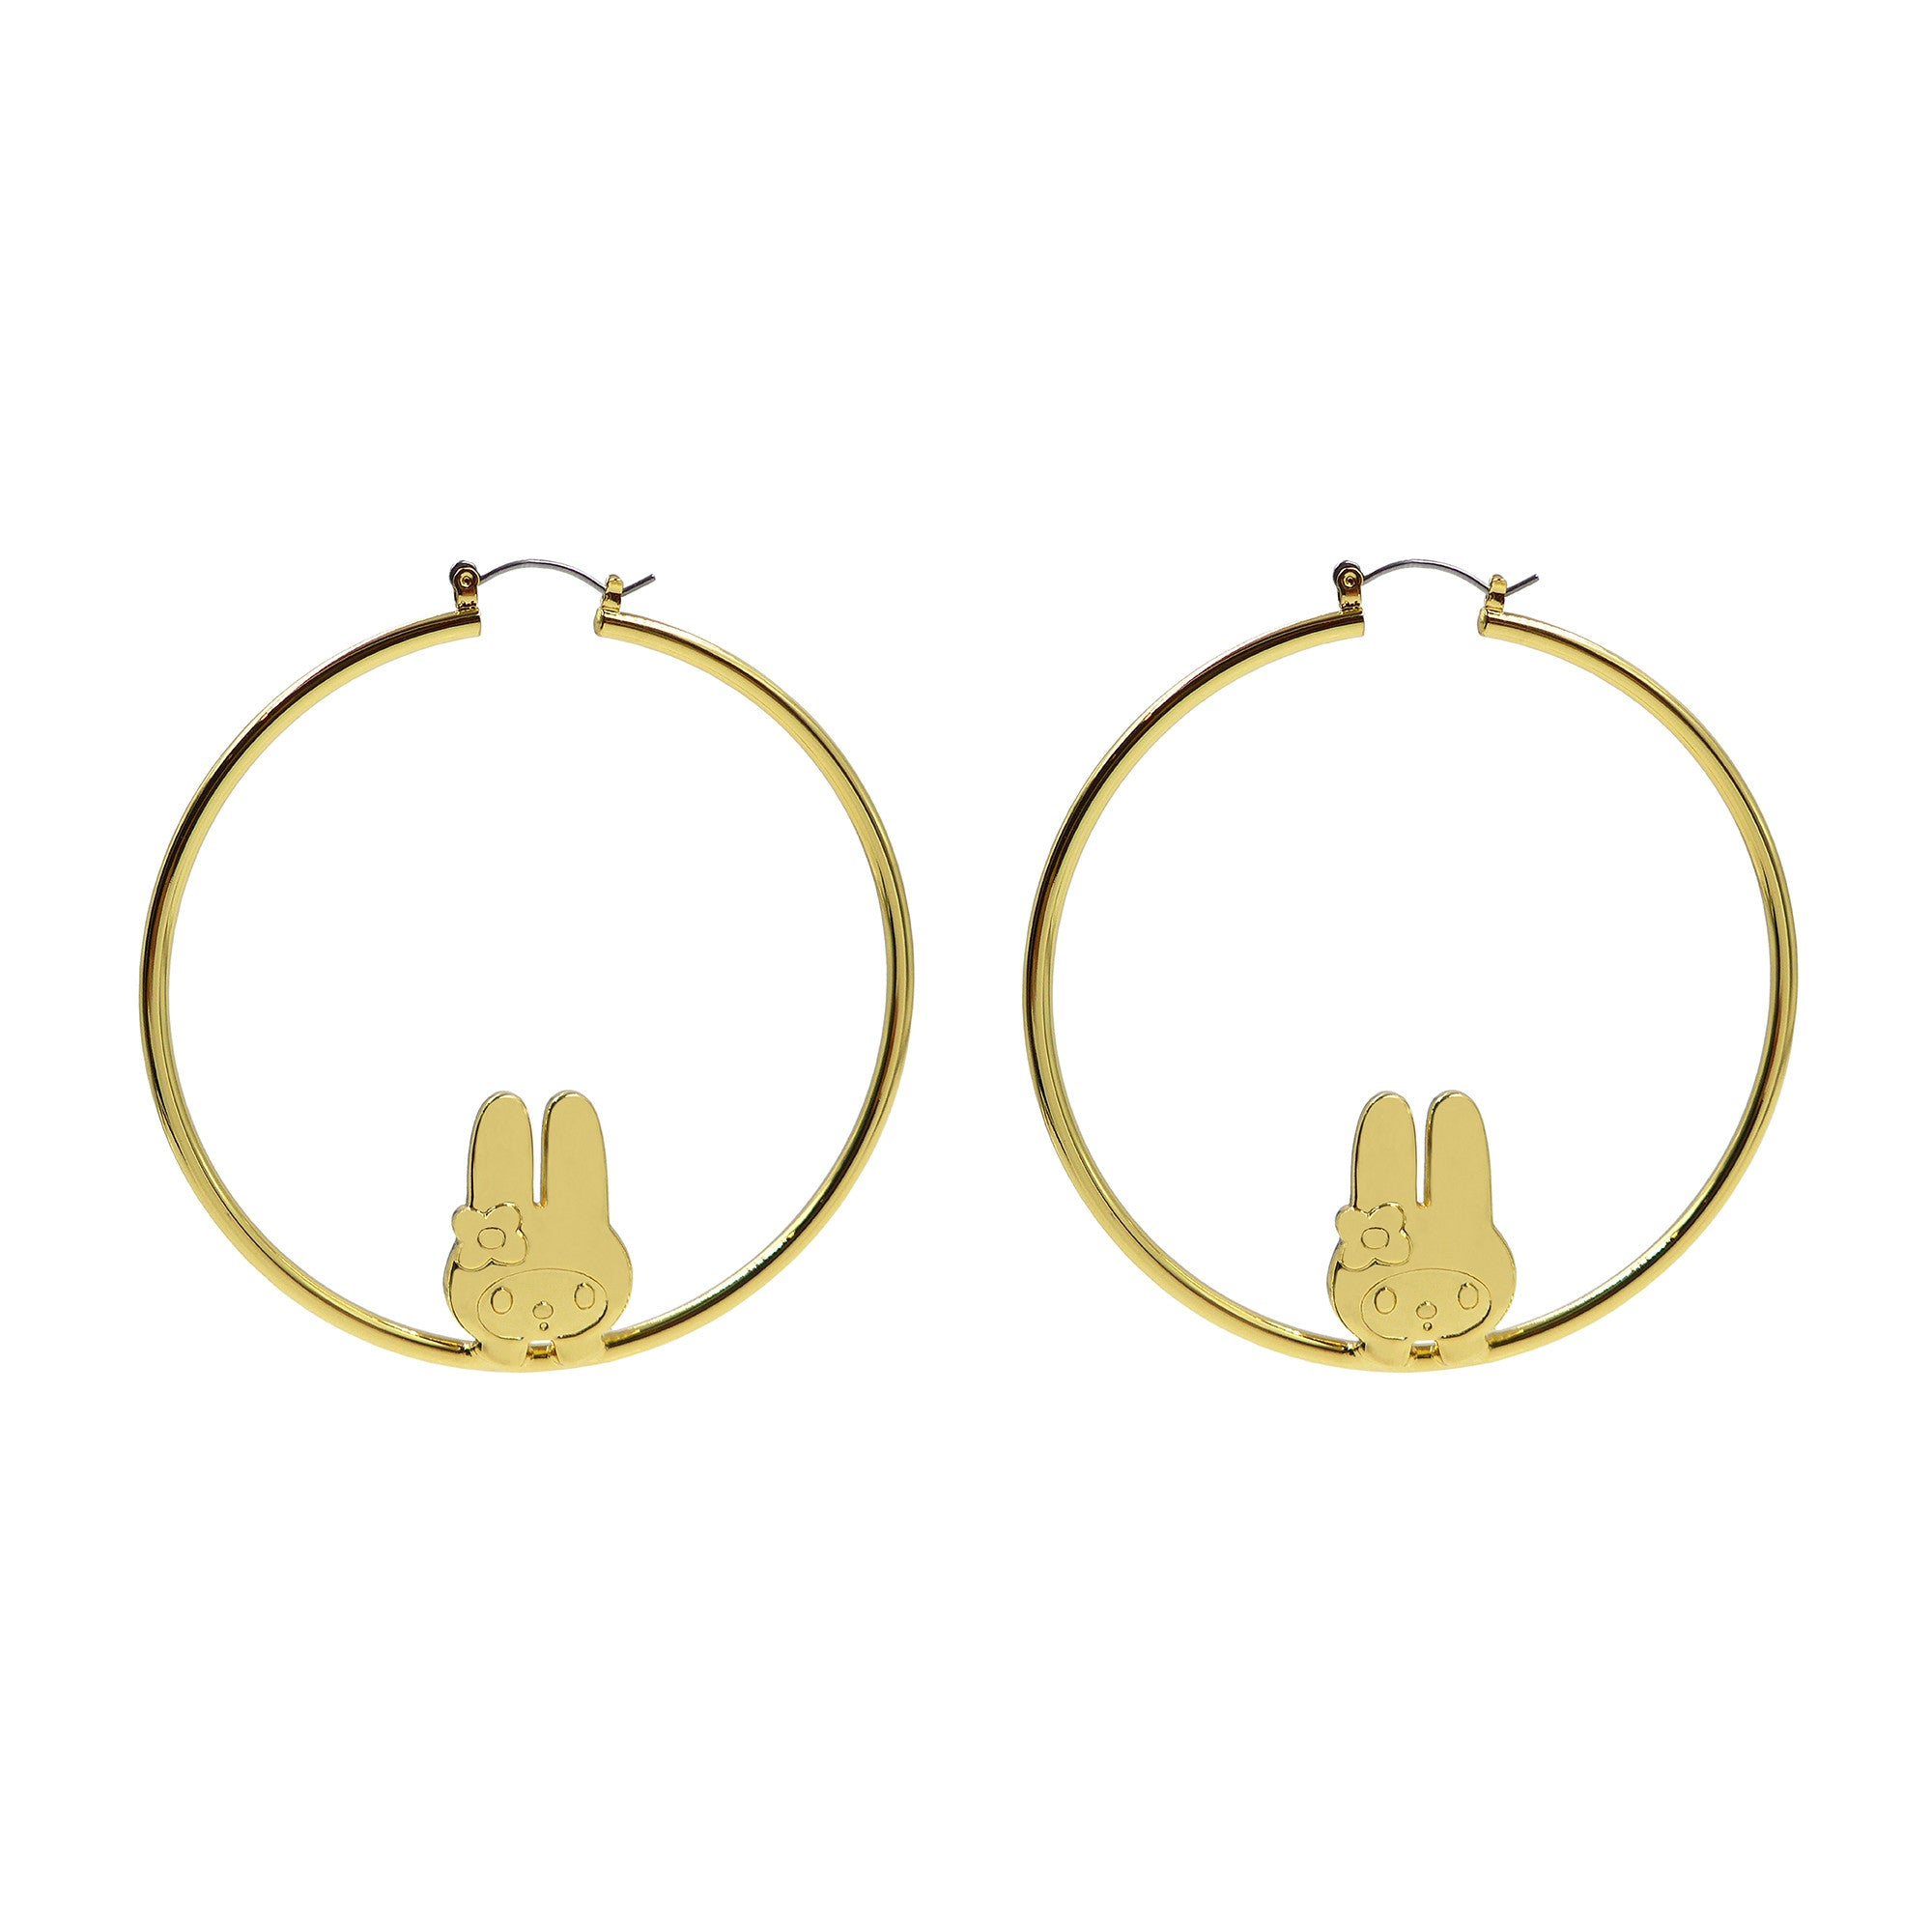 hoops jewellery co thick minimalist earrings gold earring hoop medium jewelry shop ashley summer small hood singapore